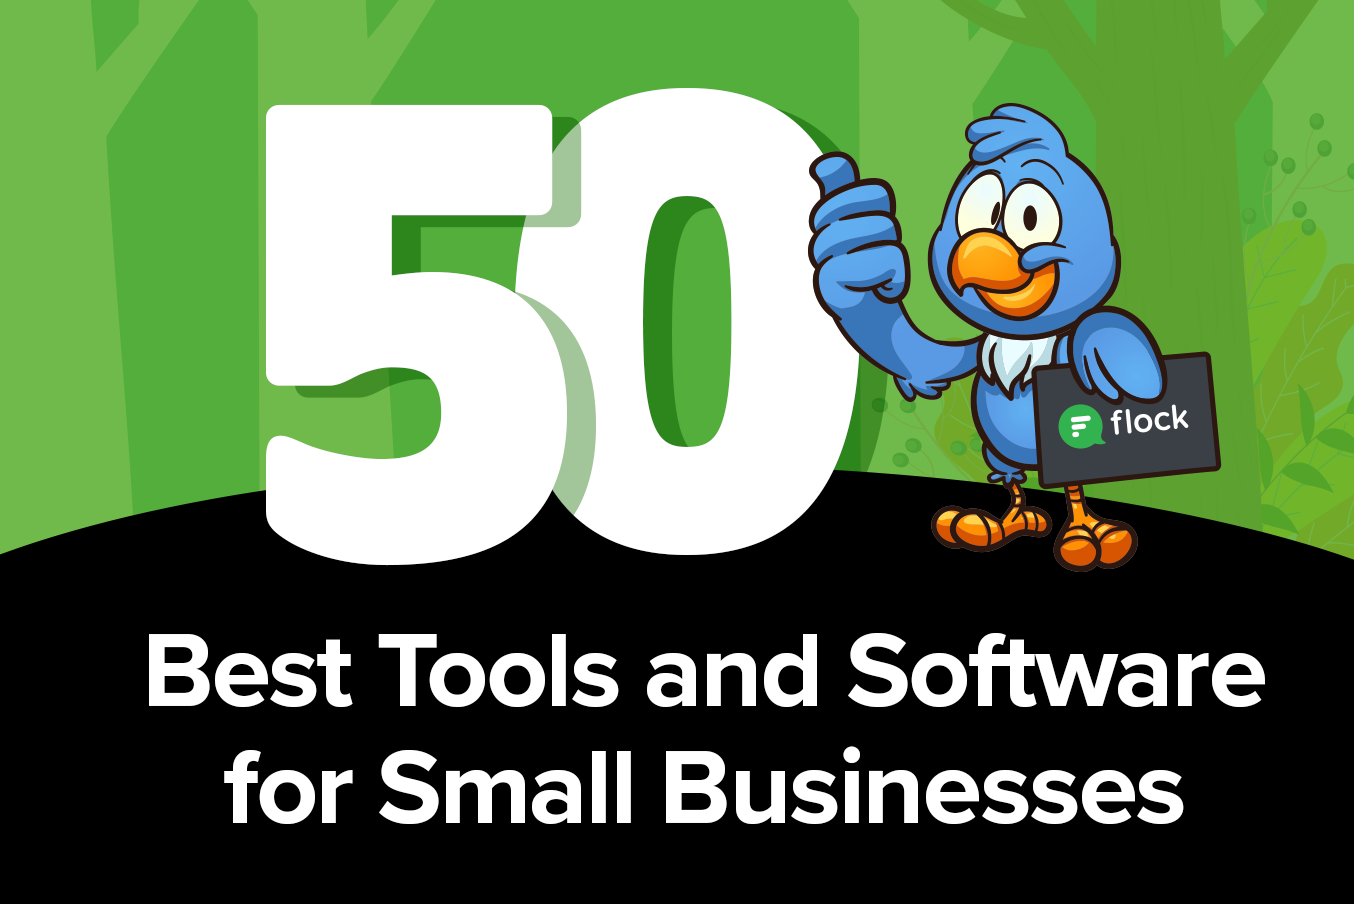 50 best tools and software blog cover image